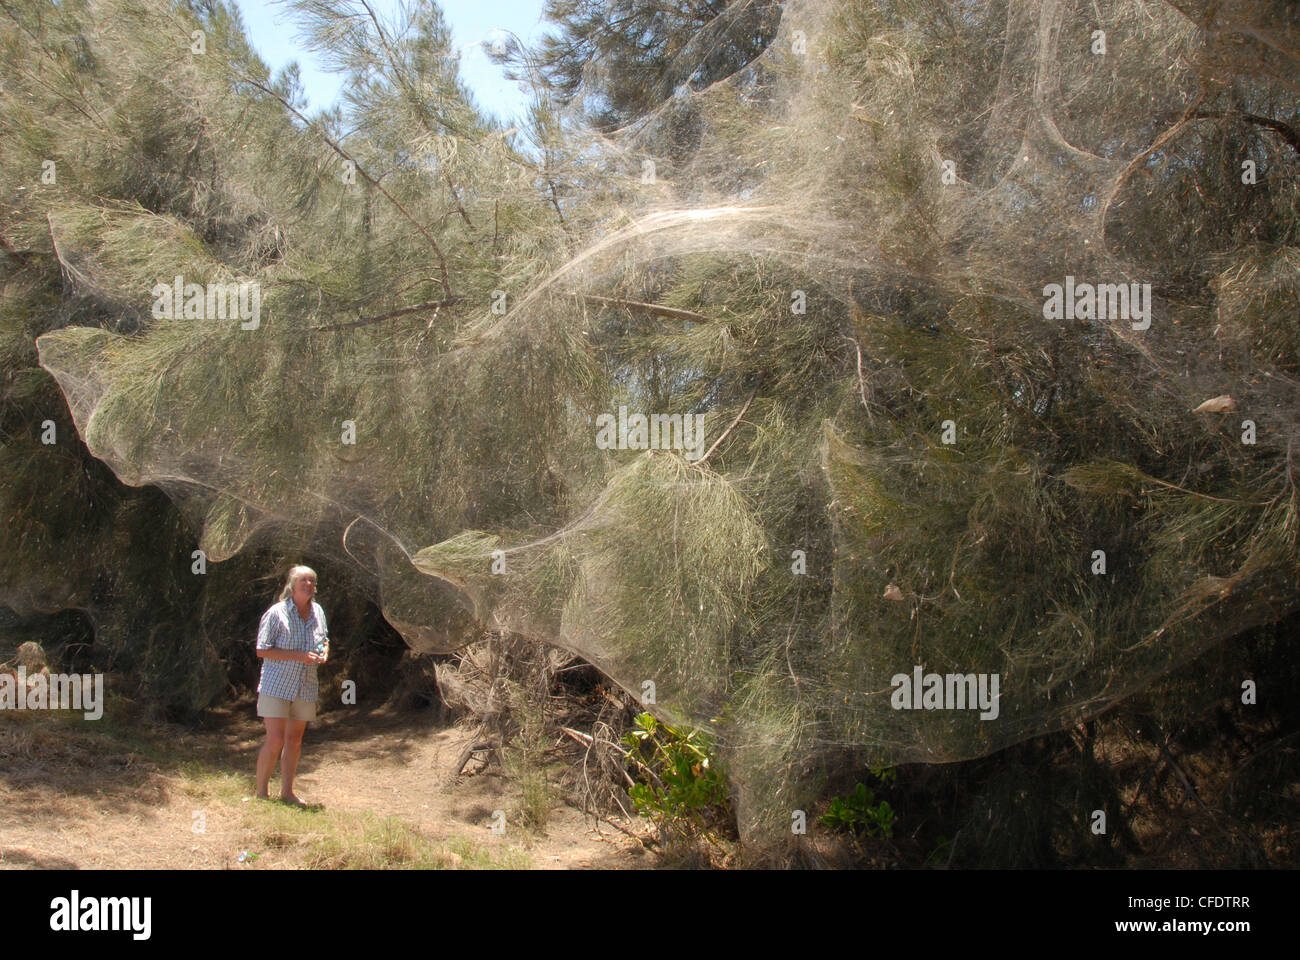 Caterpillar webs draped over entire clump of trees, Bowen, Queensland, Australia, Pacific - Stock Image